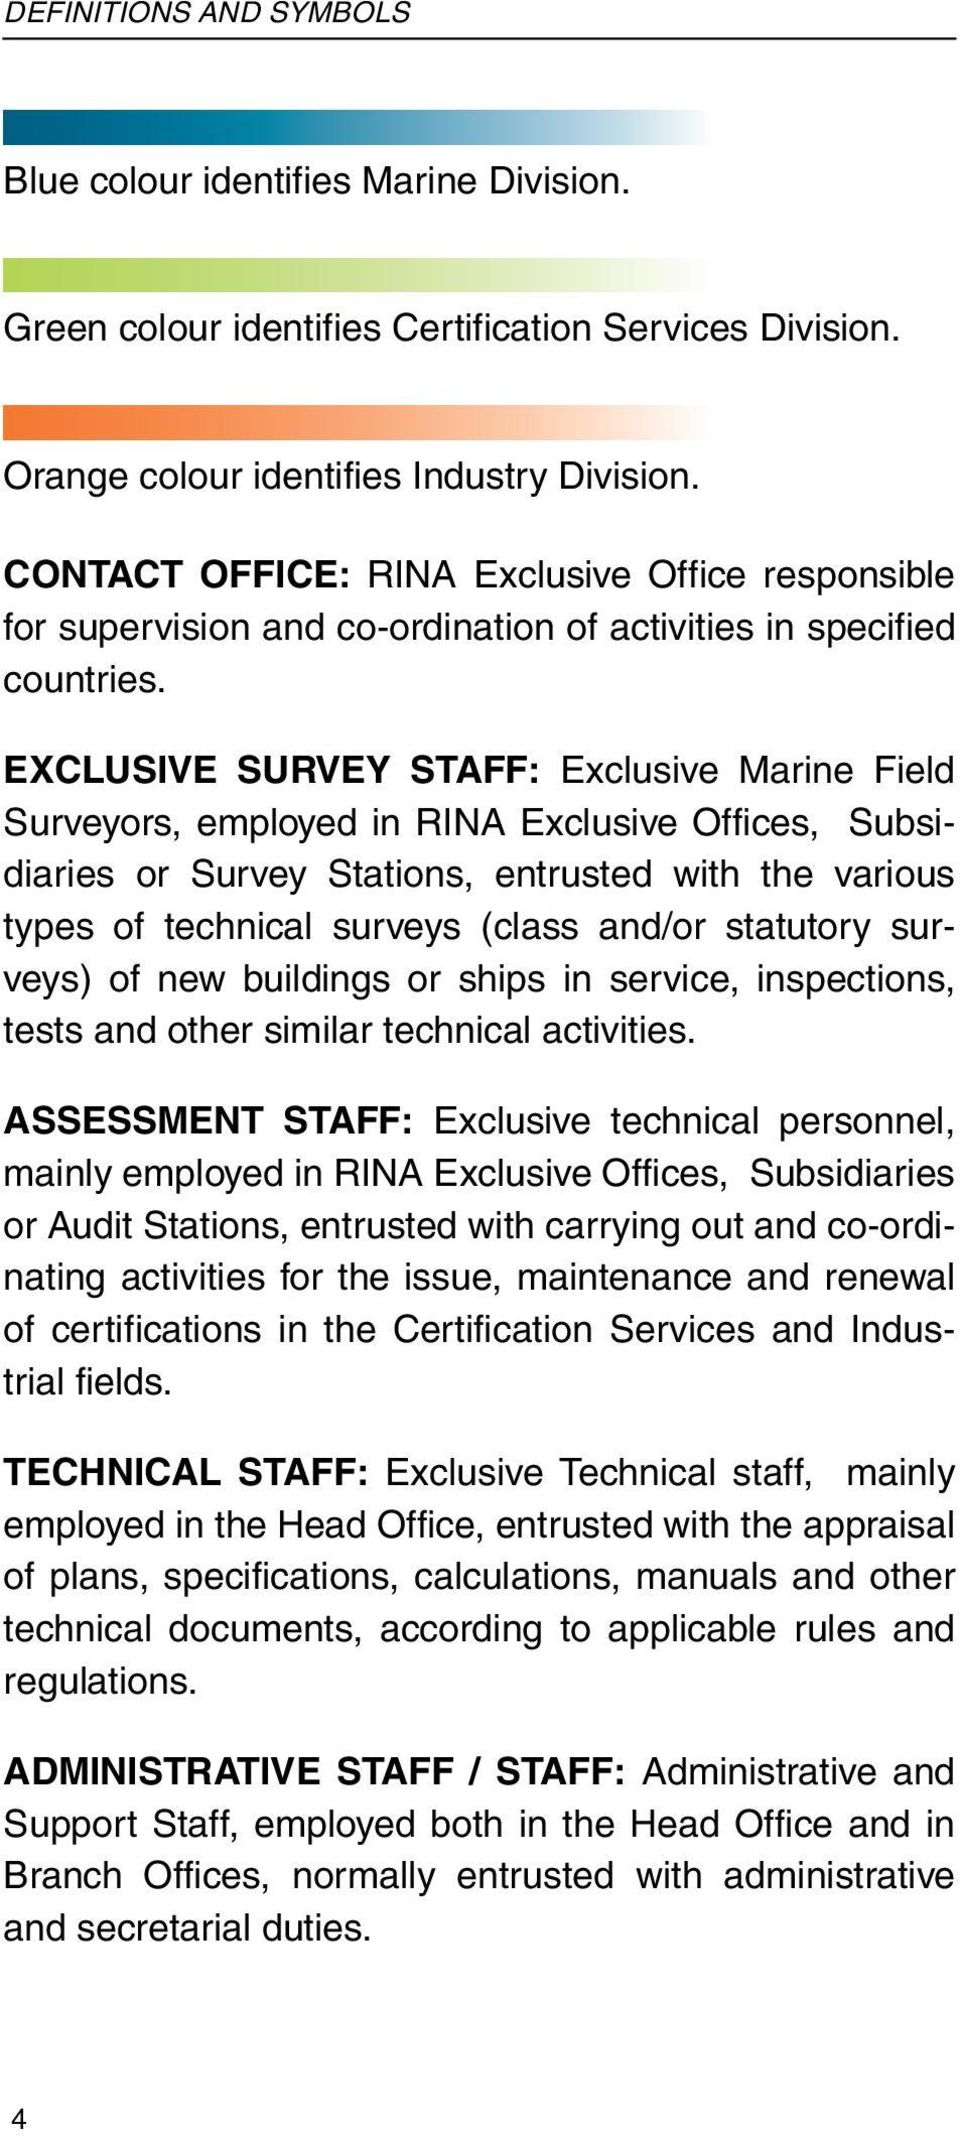 EXCLUSIVE SURVEY STAFF: Exclusive Marine Field Surveyors, employed in RINA Exclusive Offices, Subsidiaries or Survey Stations, entrusted with the various types of technical surveys (class and/or